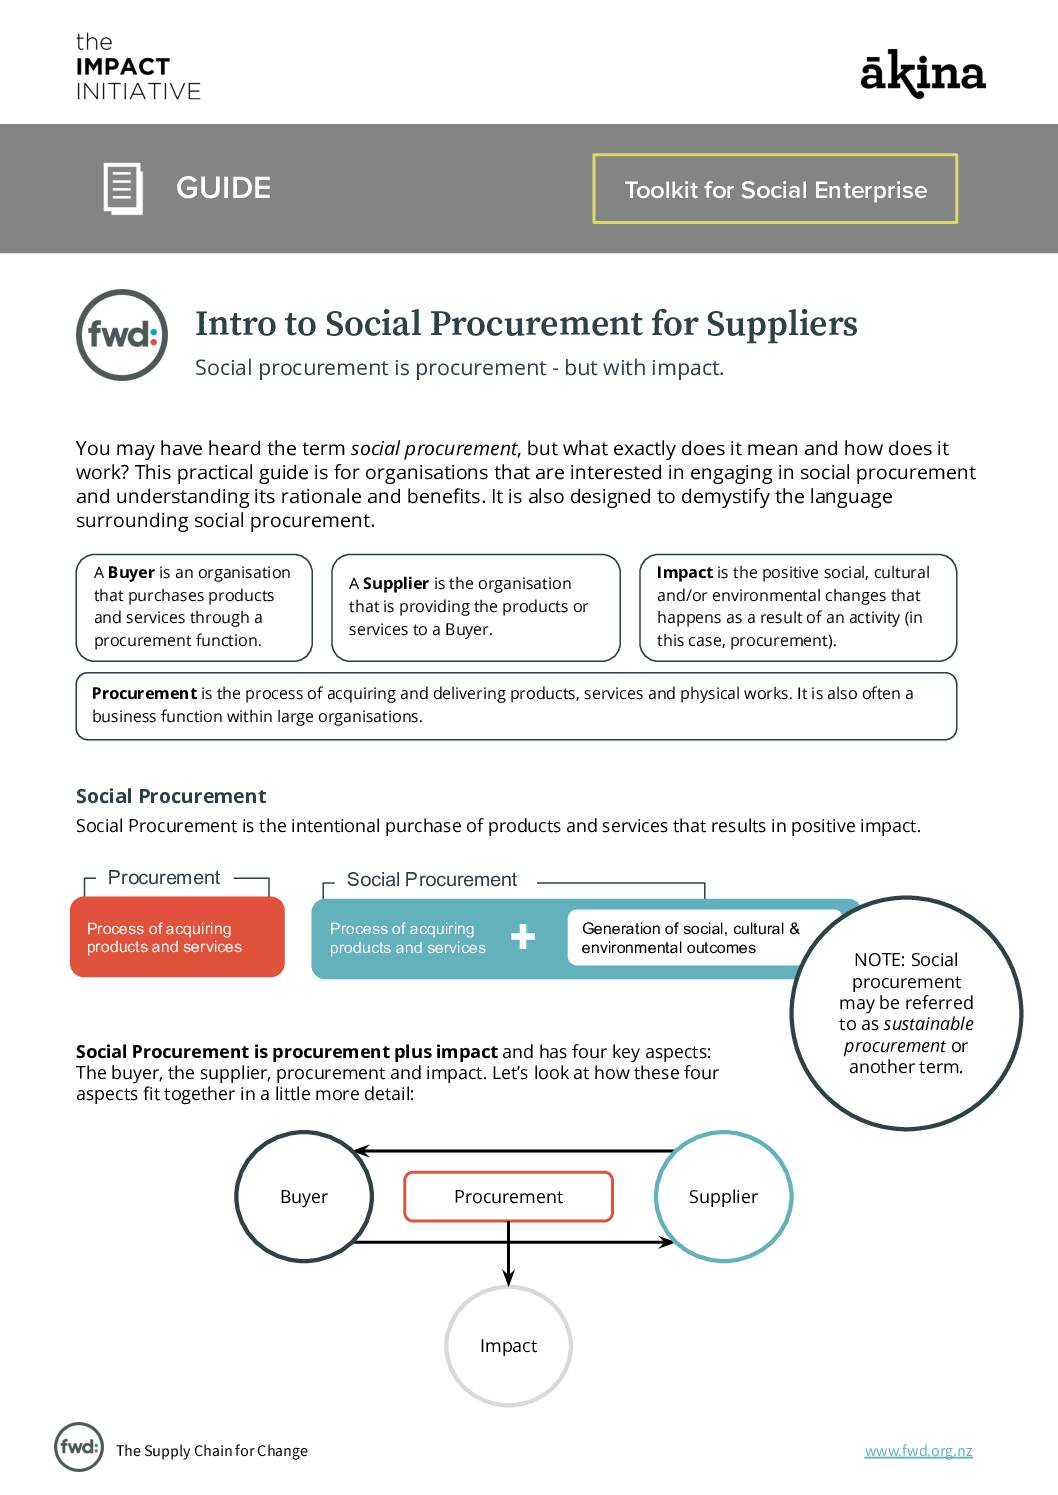 Guide: Intro to Social Procurement for Suppliers